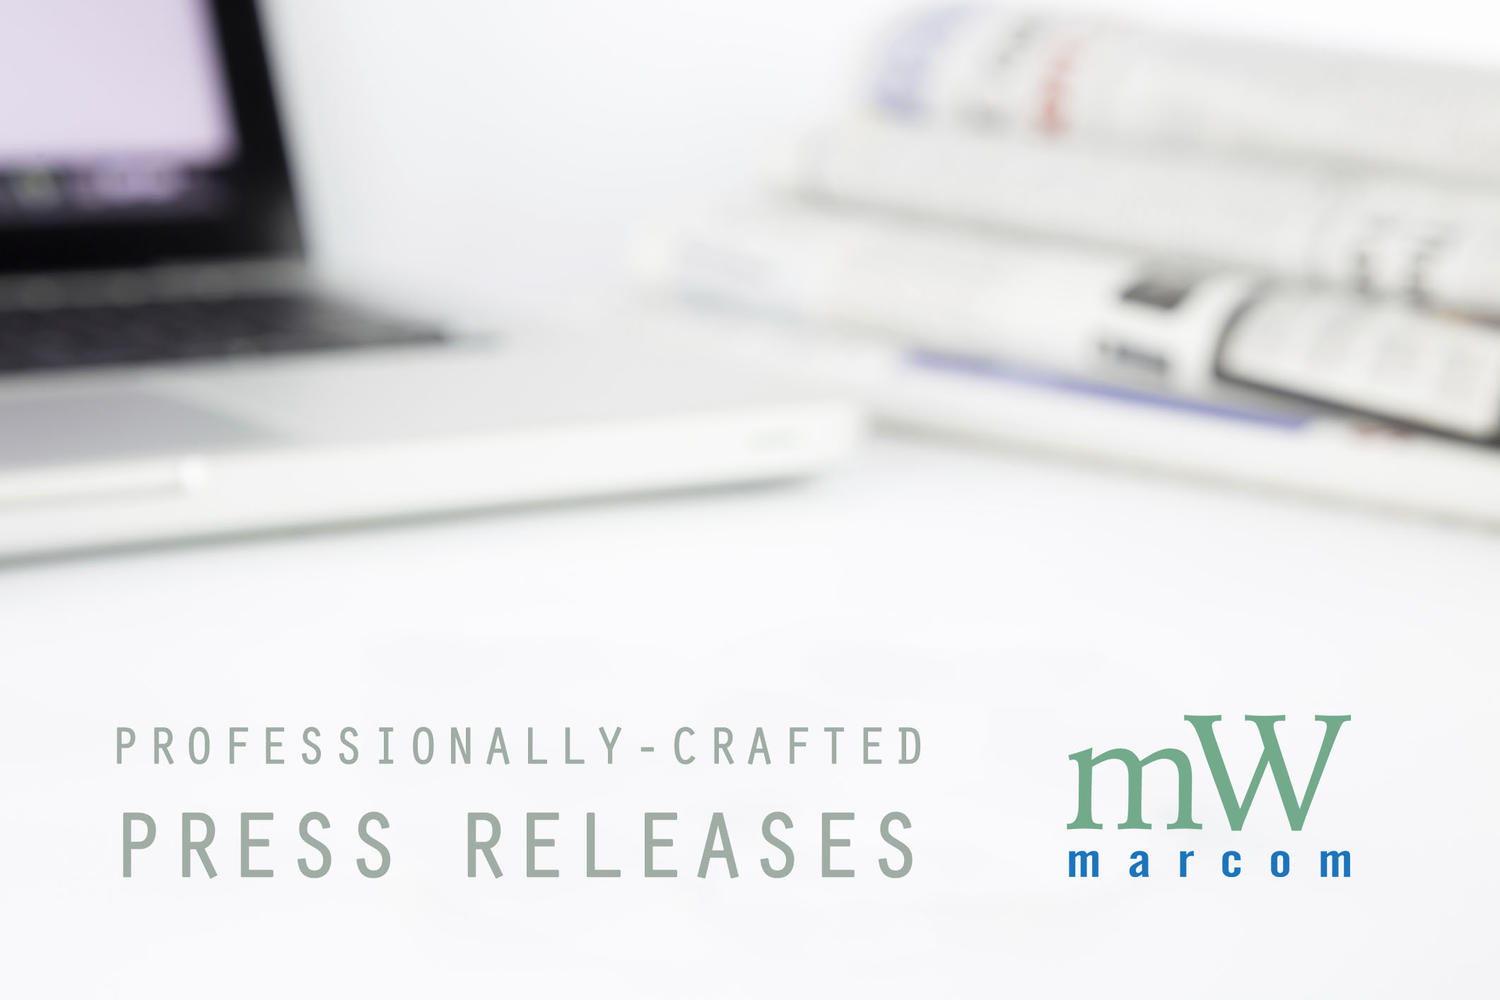 Professionally-Crafted Press Releases - Up to 700 Words by MW_MarCom - 73653